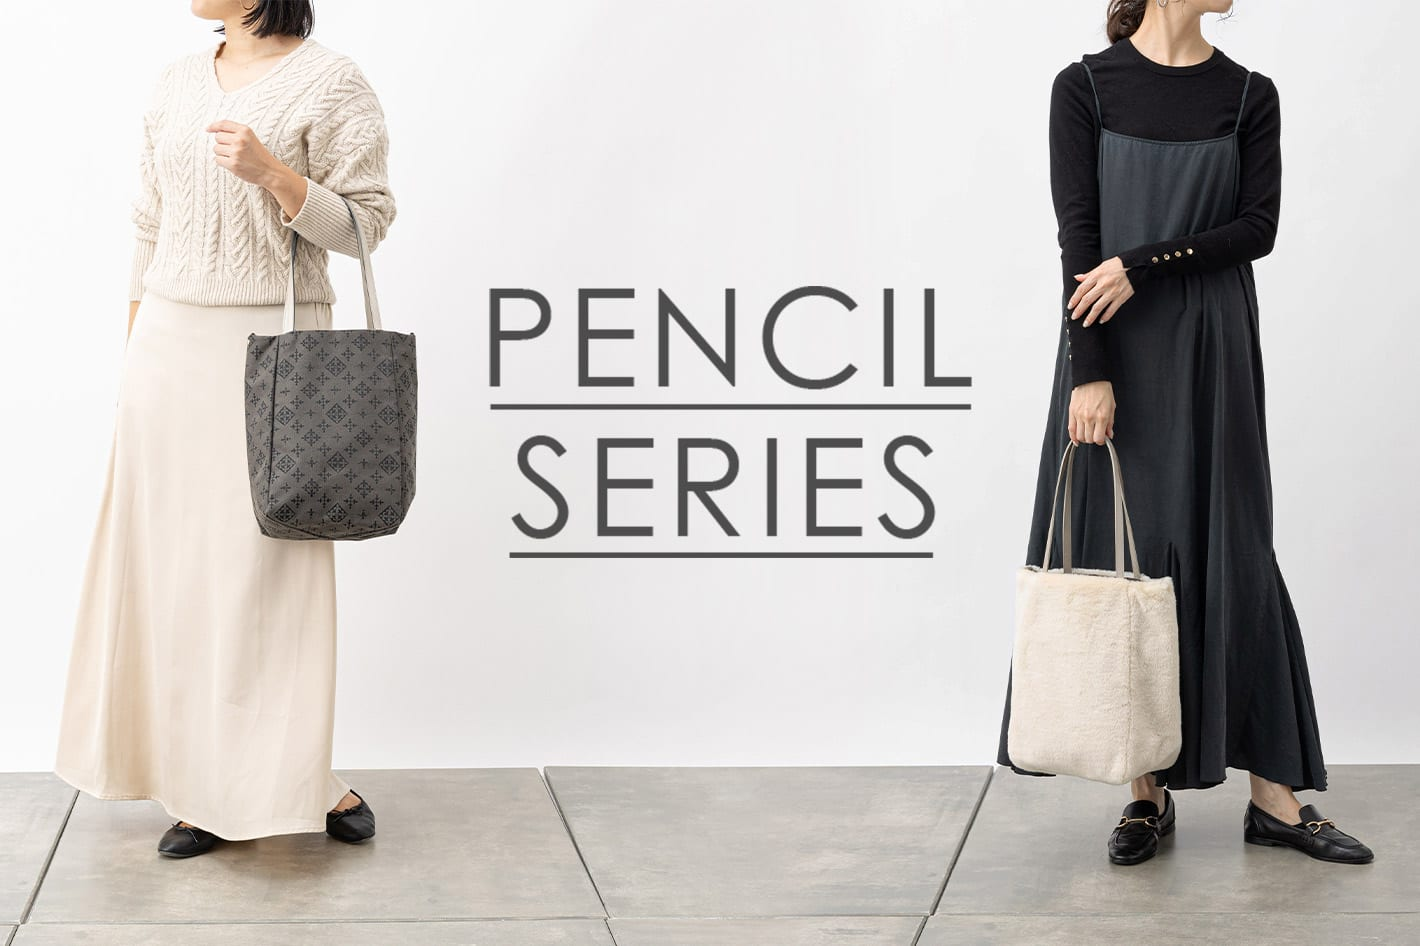 russet PENCIL SERIES -カラー・素材を新たに登場-